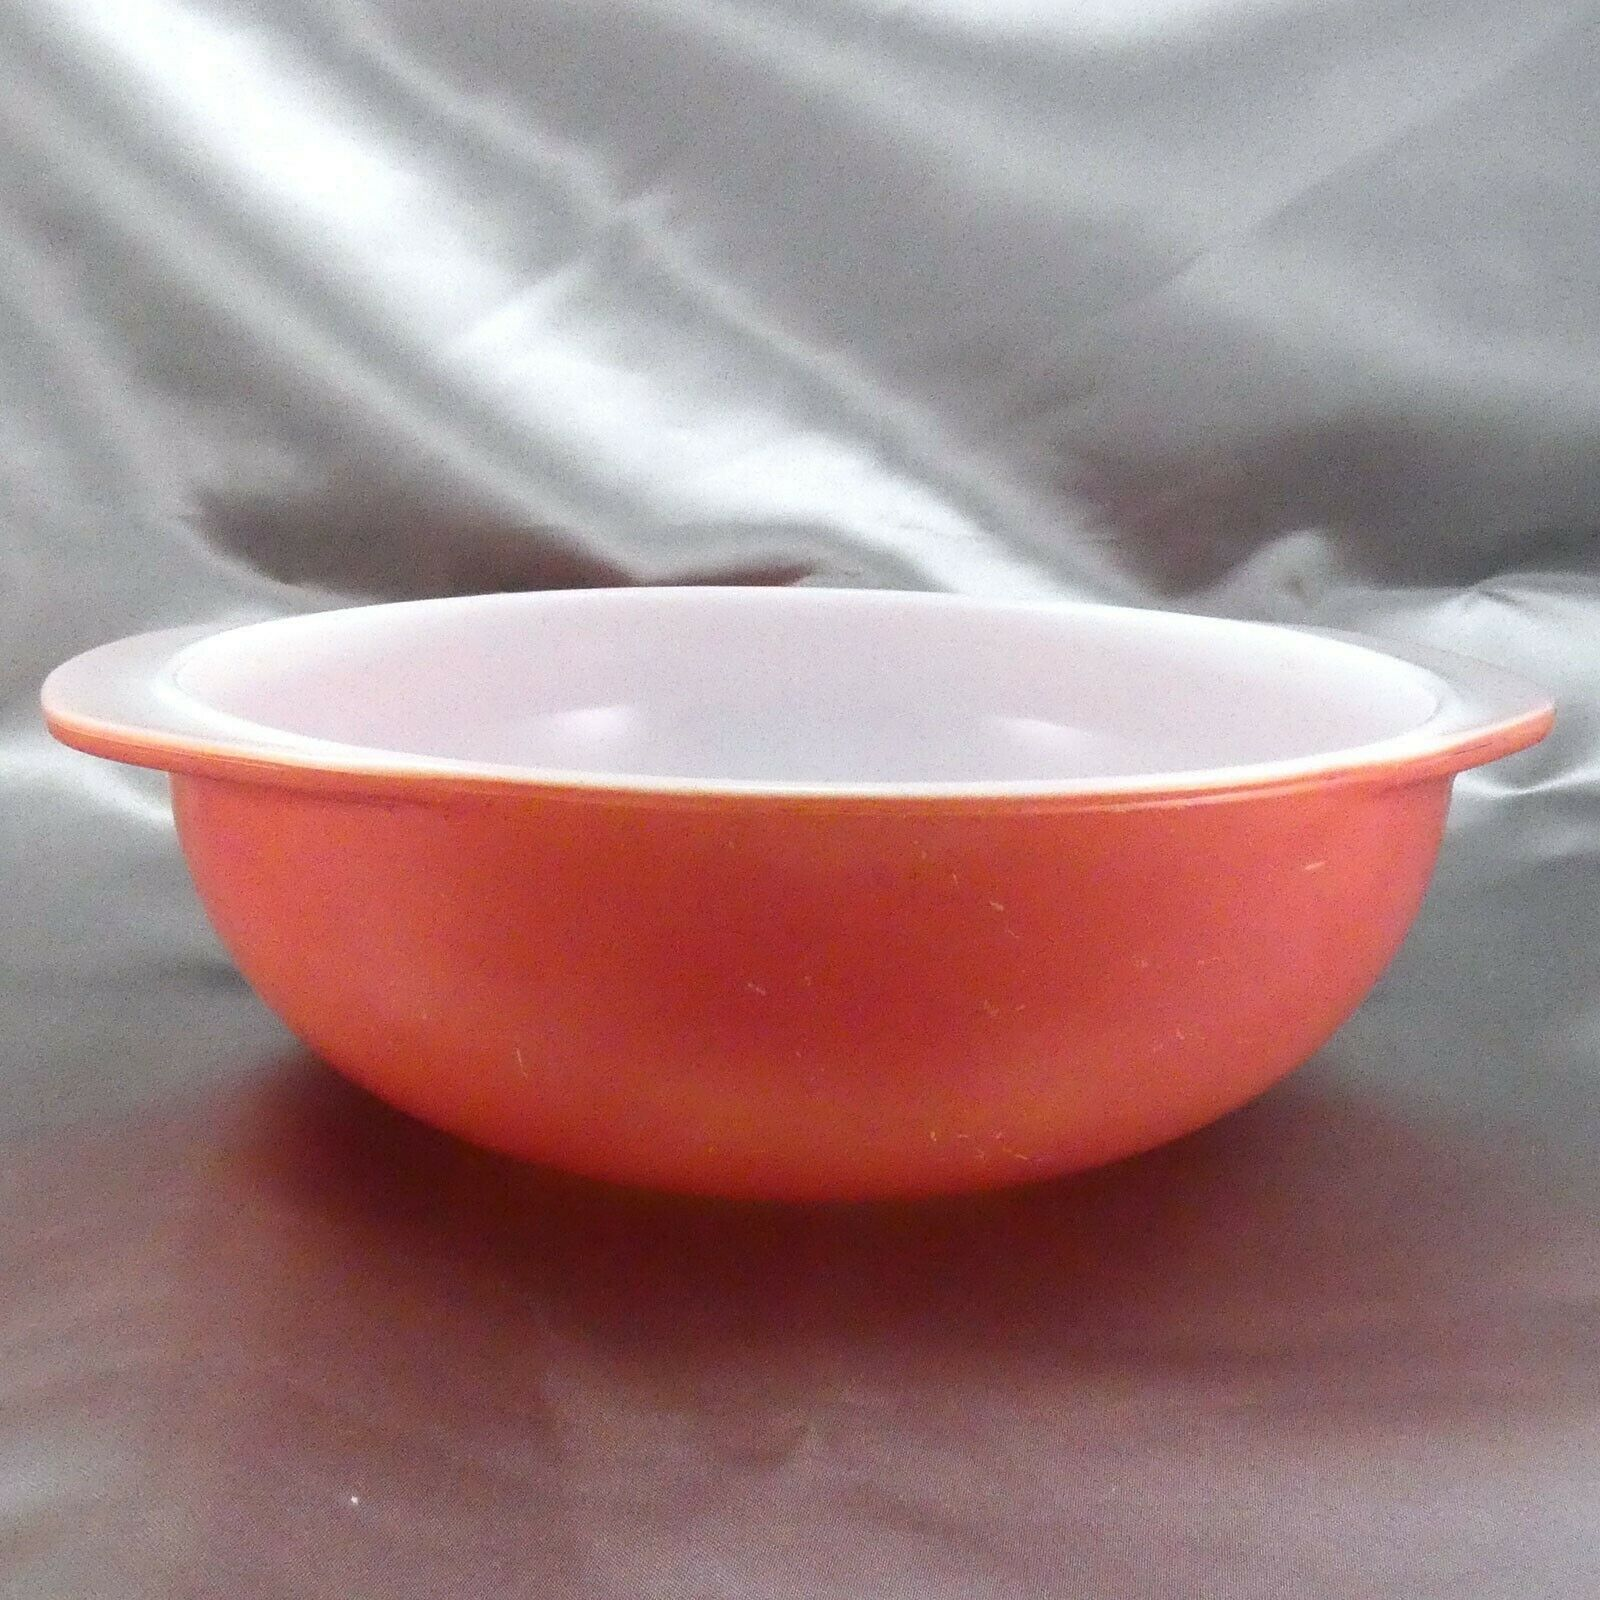 Pyrex 024 Pink Milk Glass Casserole Dish 2qt Serving Bowl ~ Made in the USA image 3